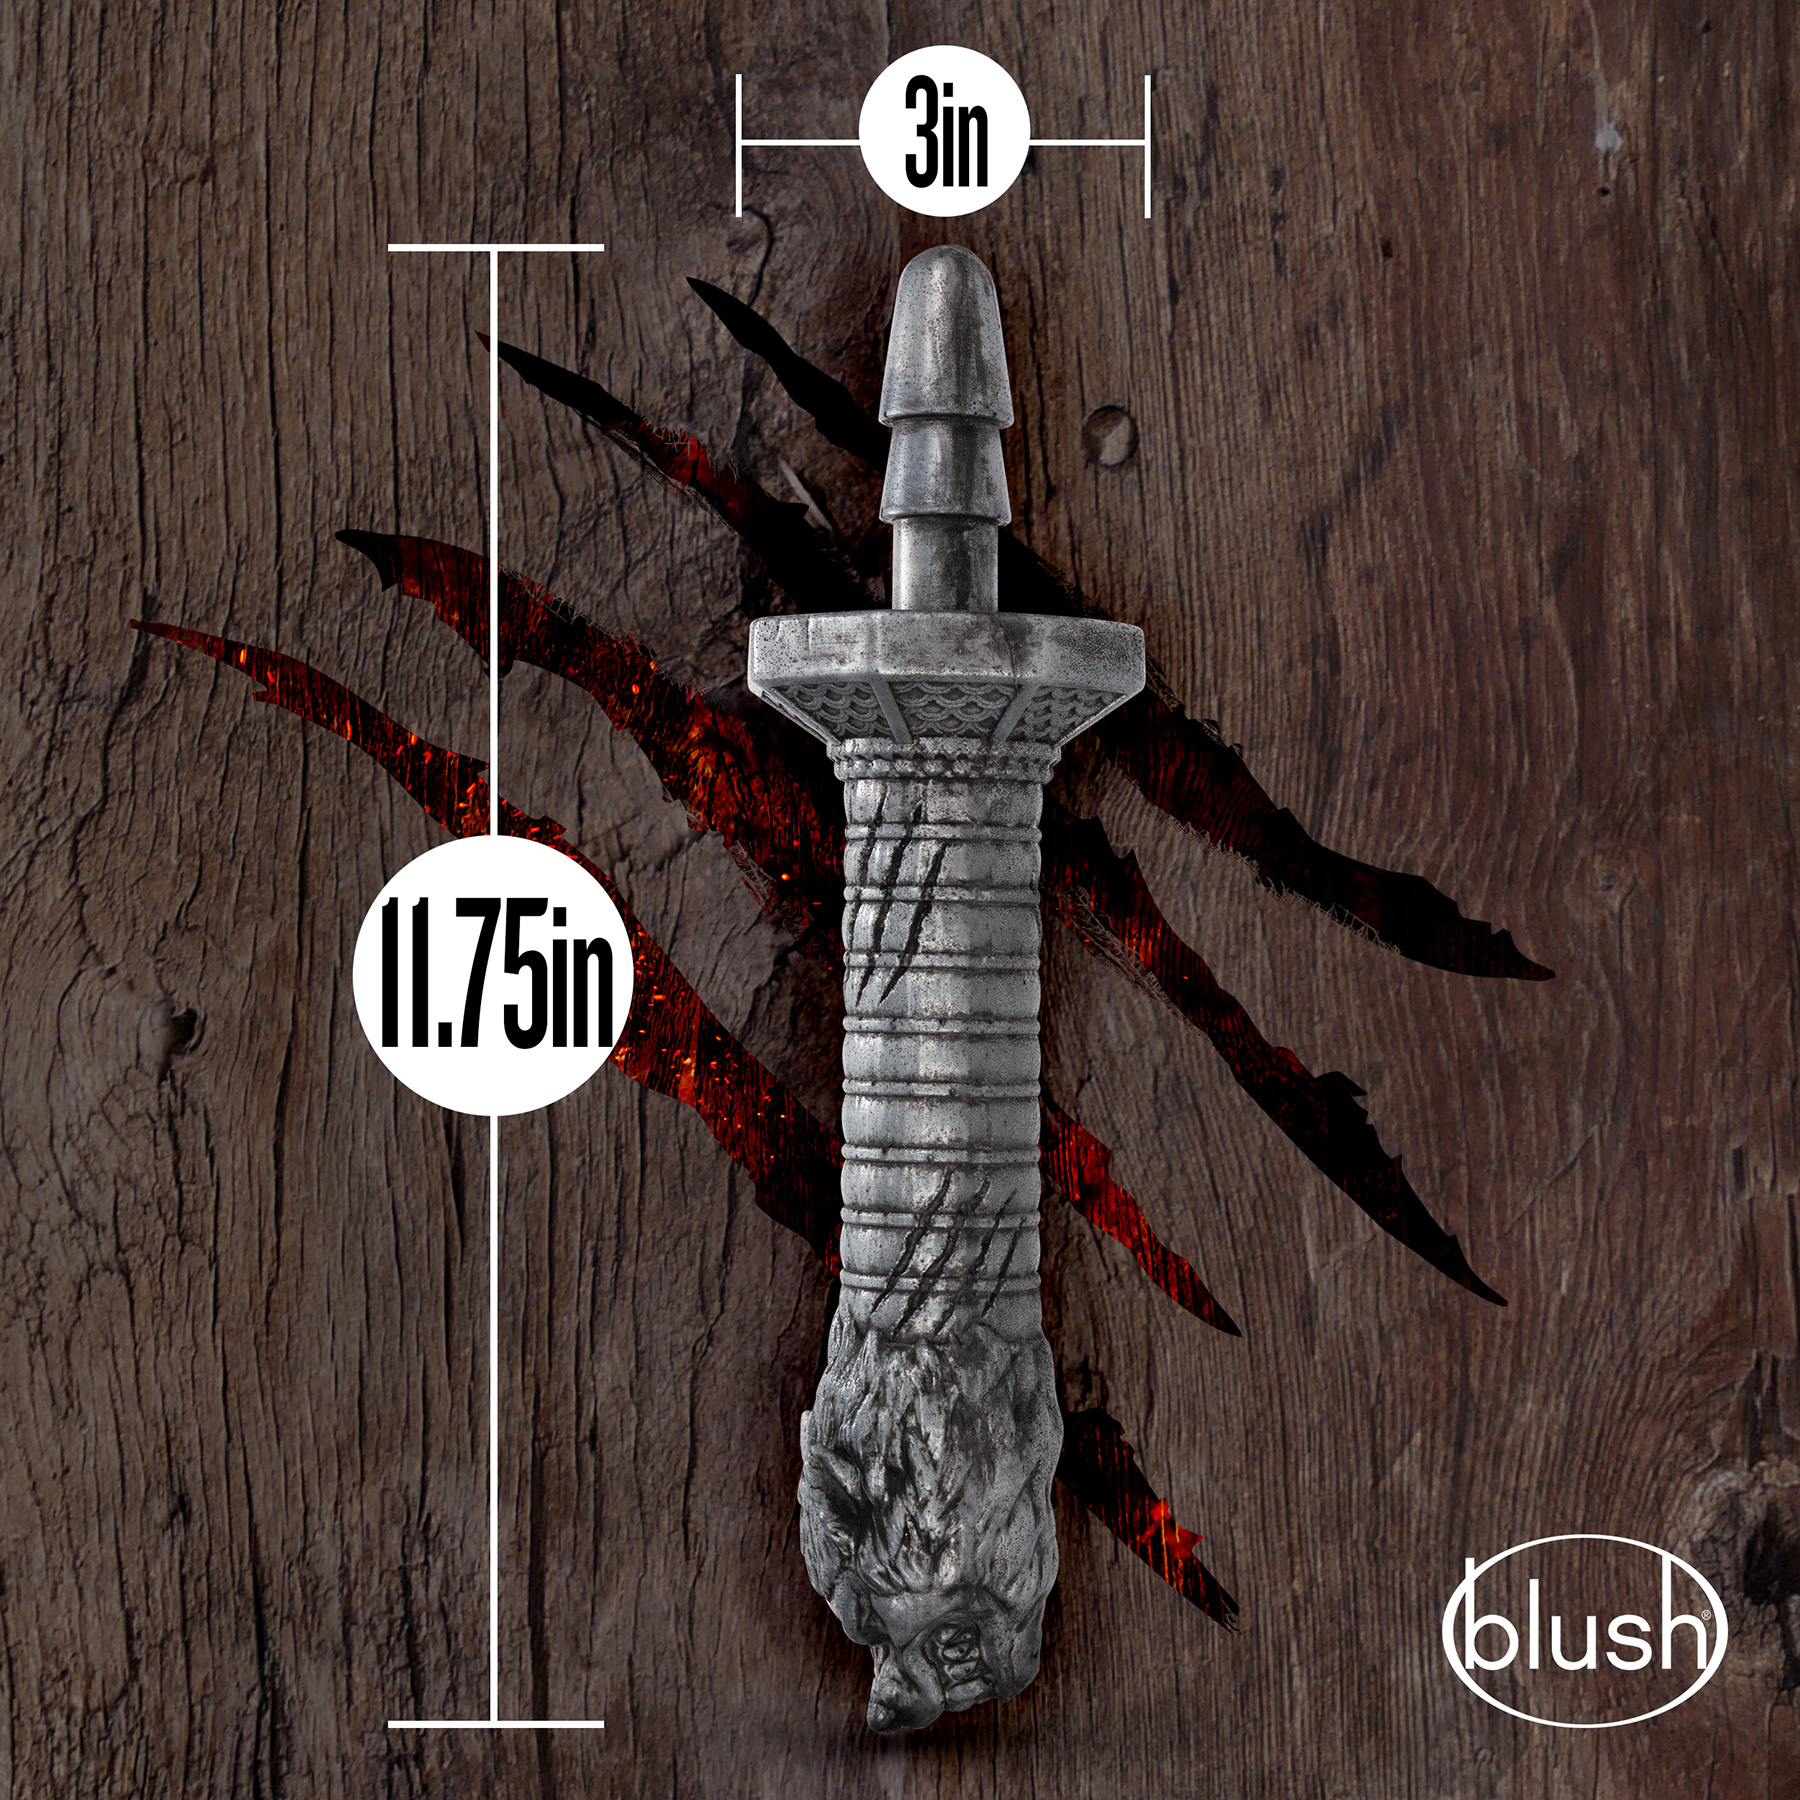 The Realm Rougarou Lock On Werewolf Sword Dildo Handle - Measurements